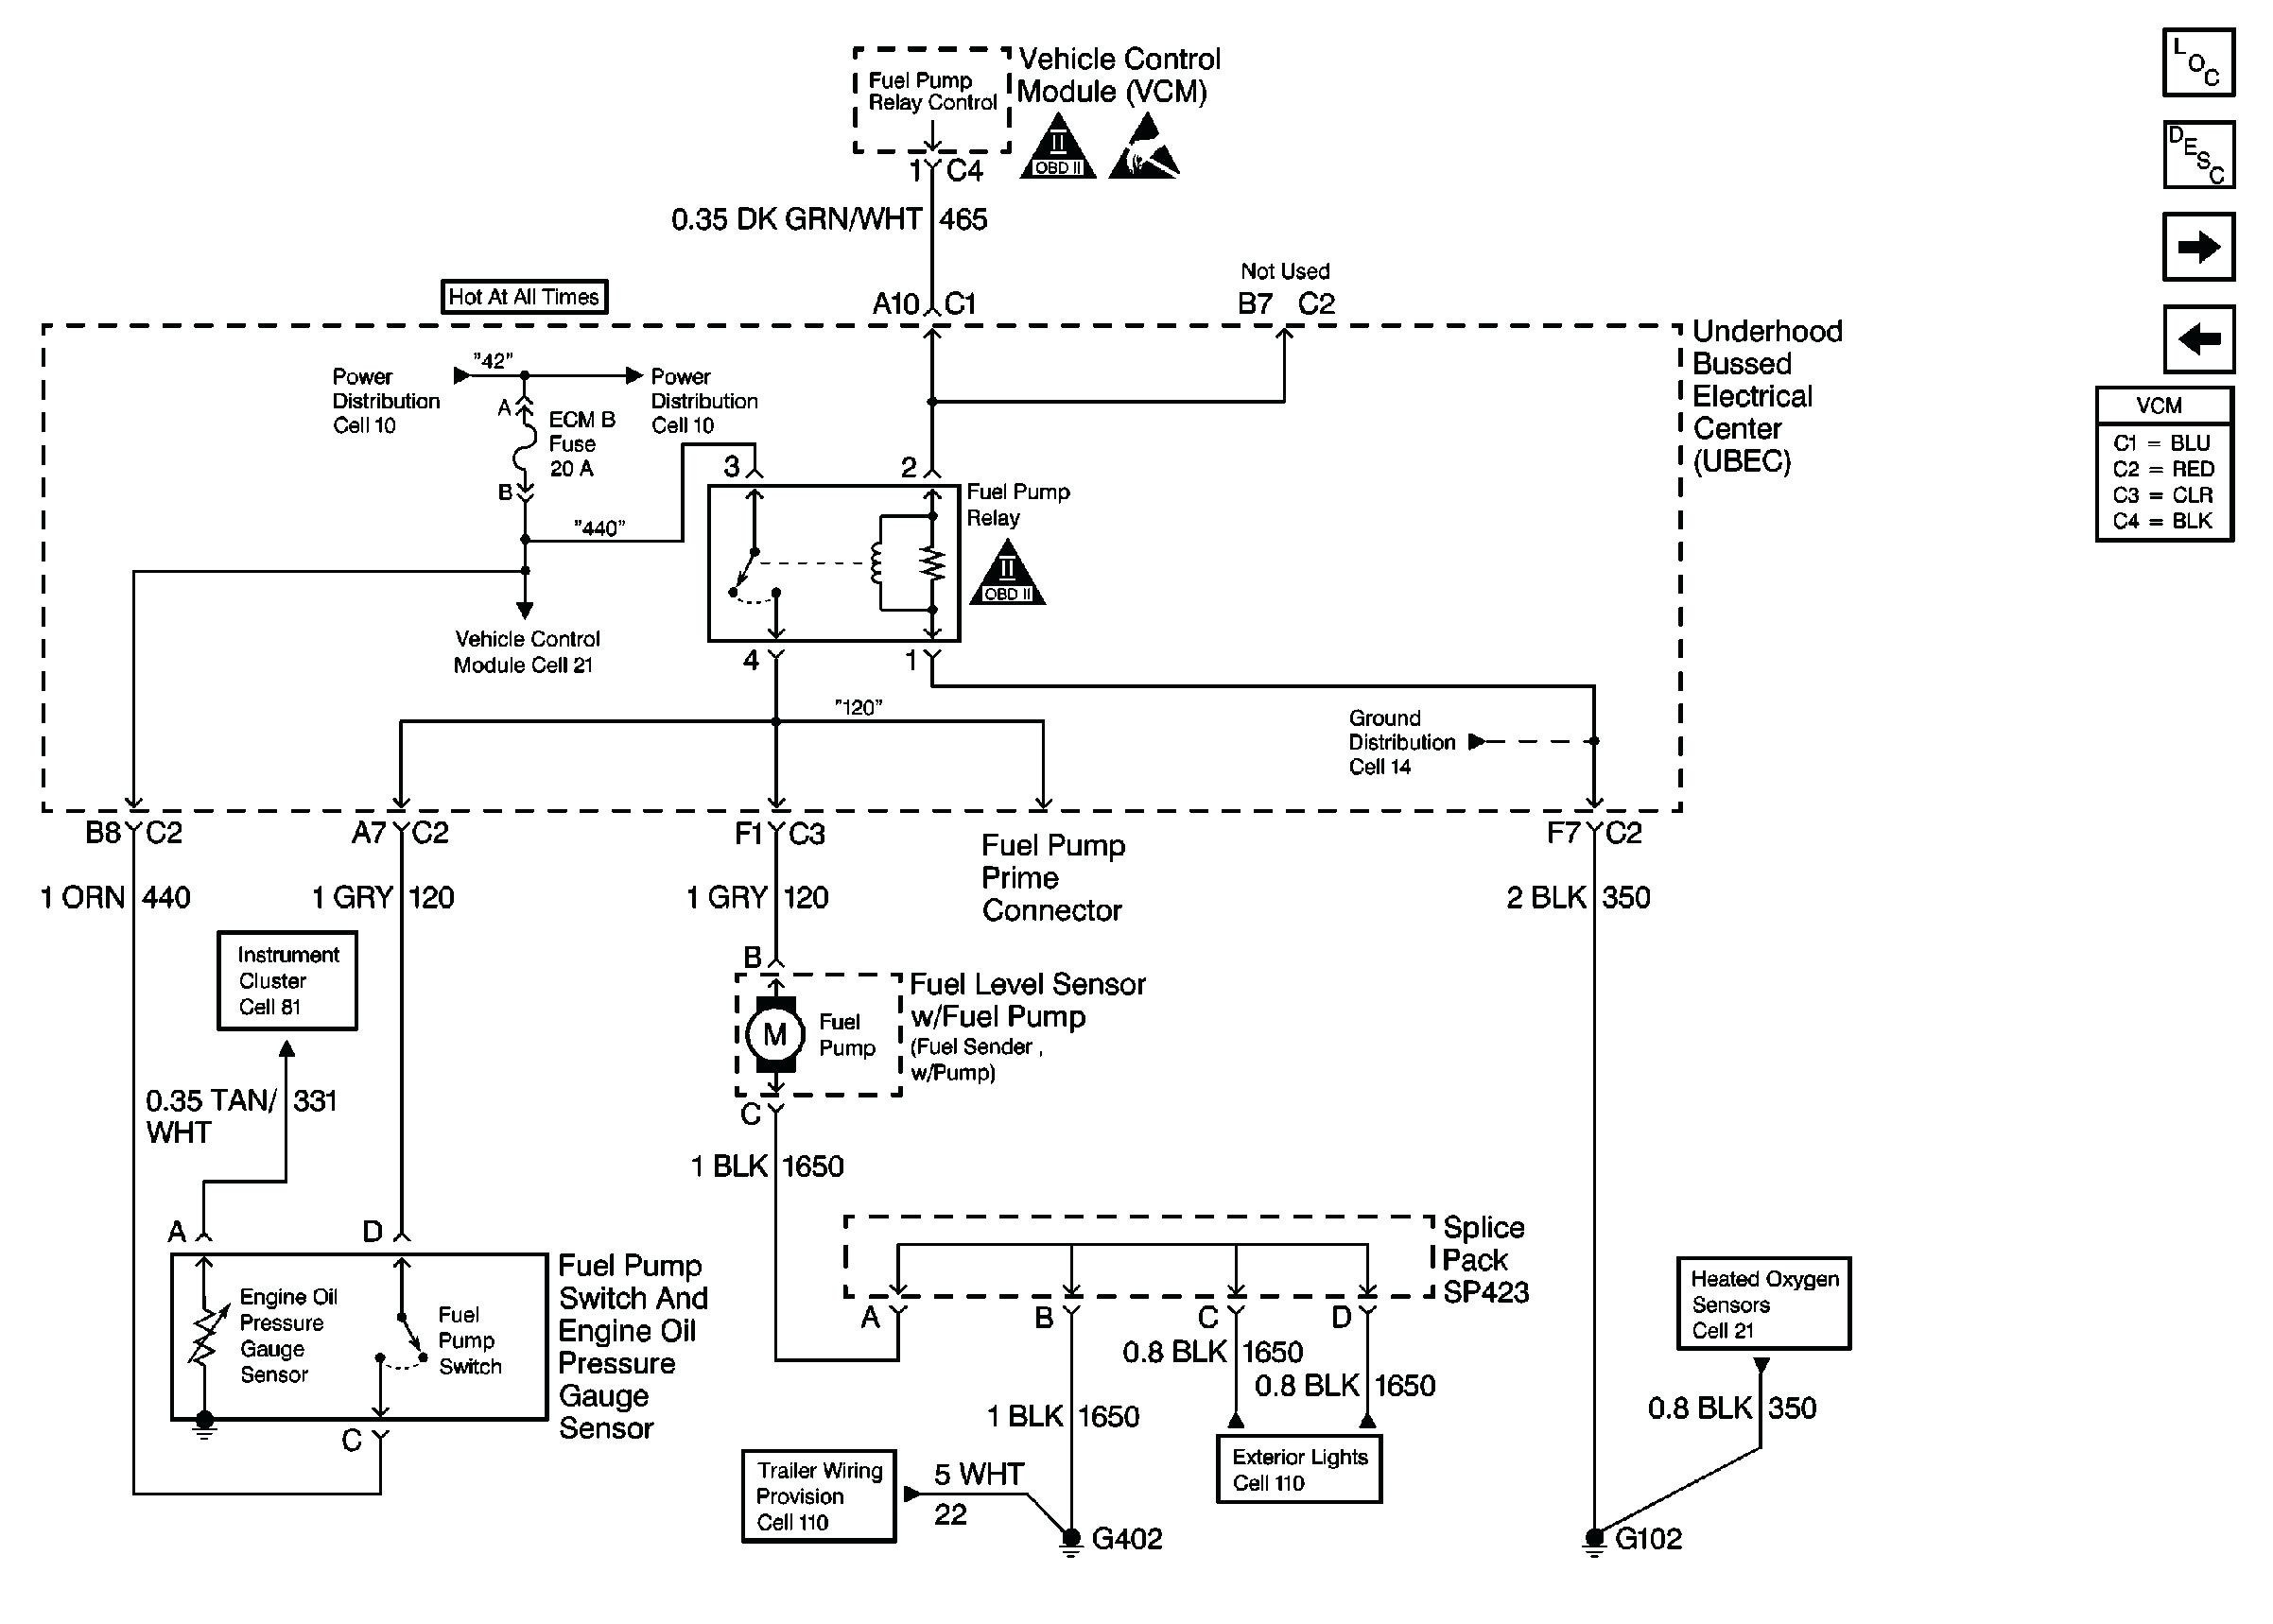 Ge Metal Halide Ballast Wiring Diagram | Wiring Diagram - Metal Halide Ballast Wiring Diagram